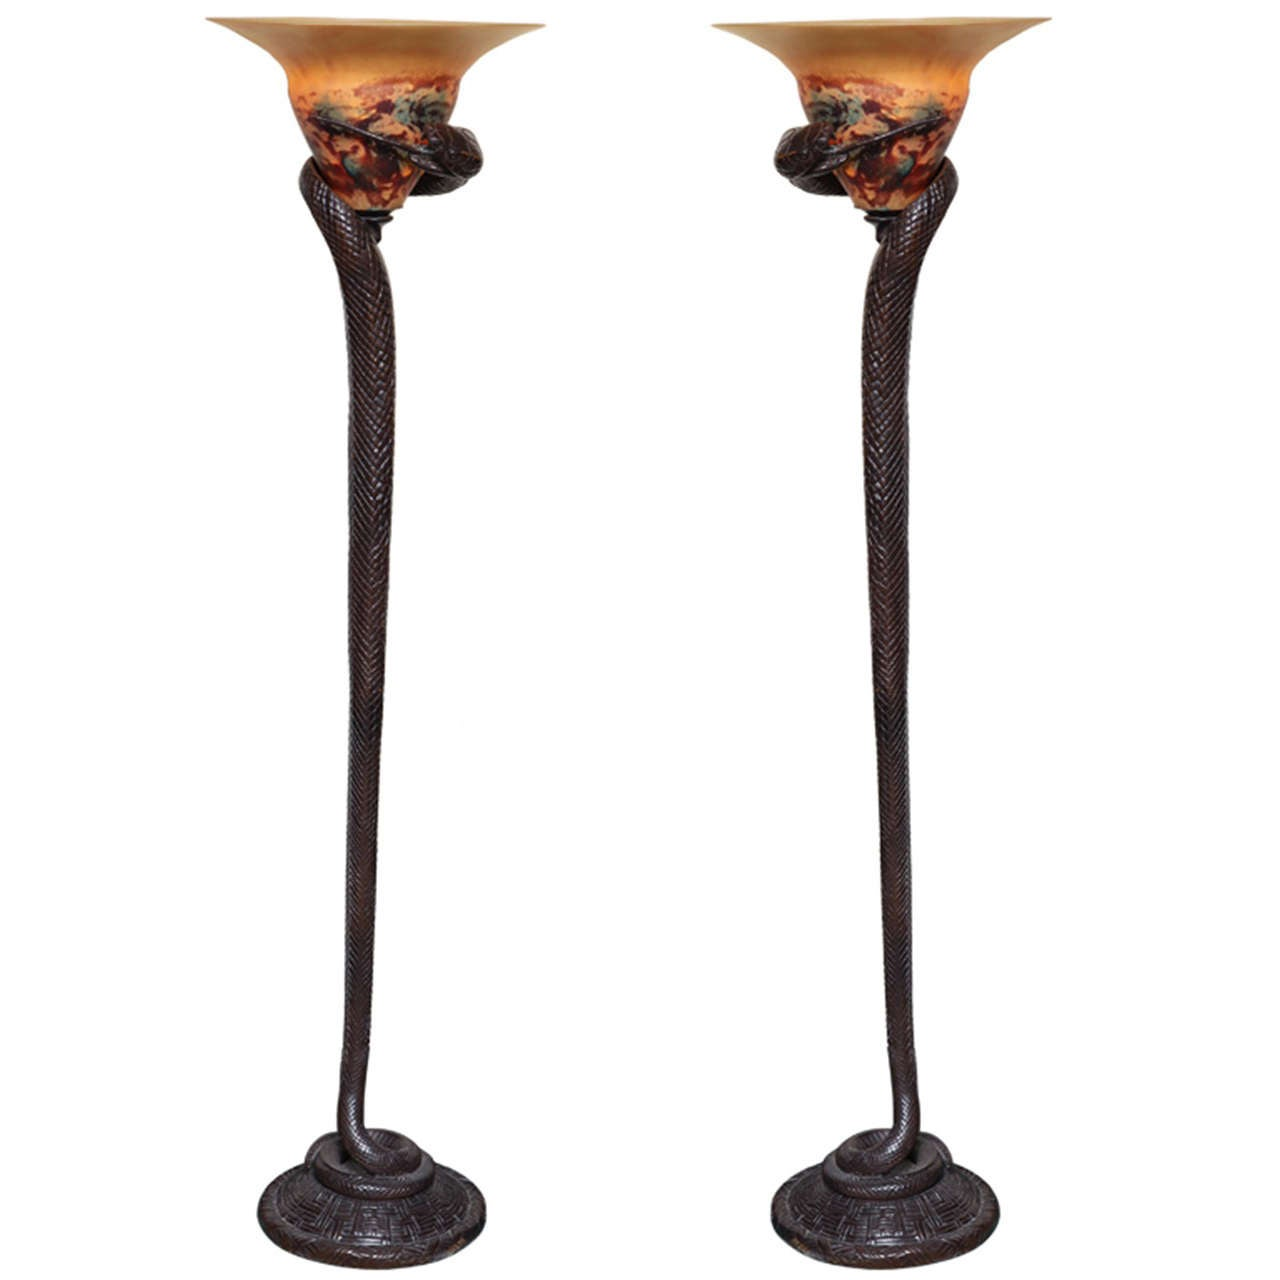 Pair of art deco style bronze and art glass snake form floor lamps pair of art deco style bronze and art glass snake form floor lamps for sale aloadofball Images